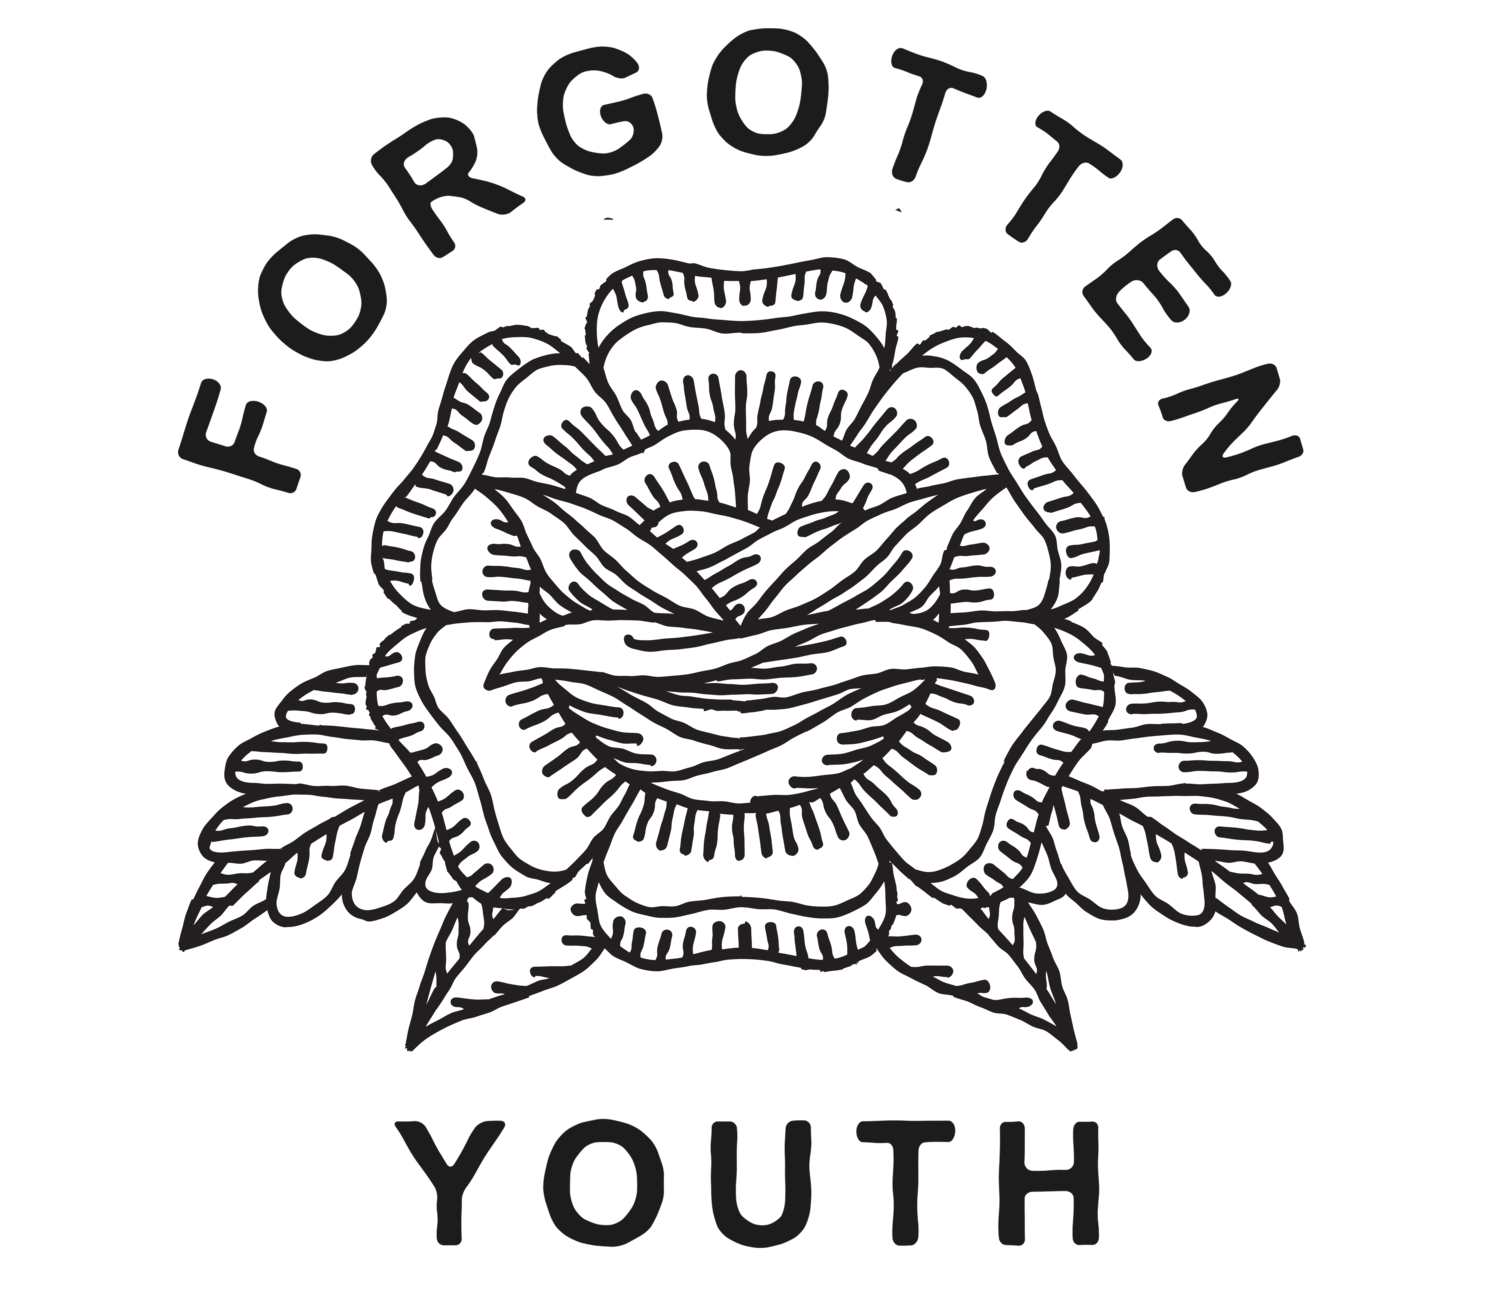 Forgotten Youth Supply Co.